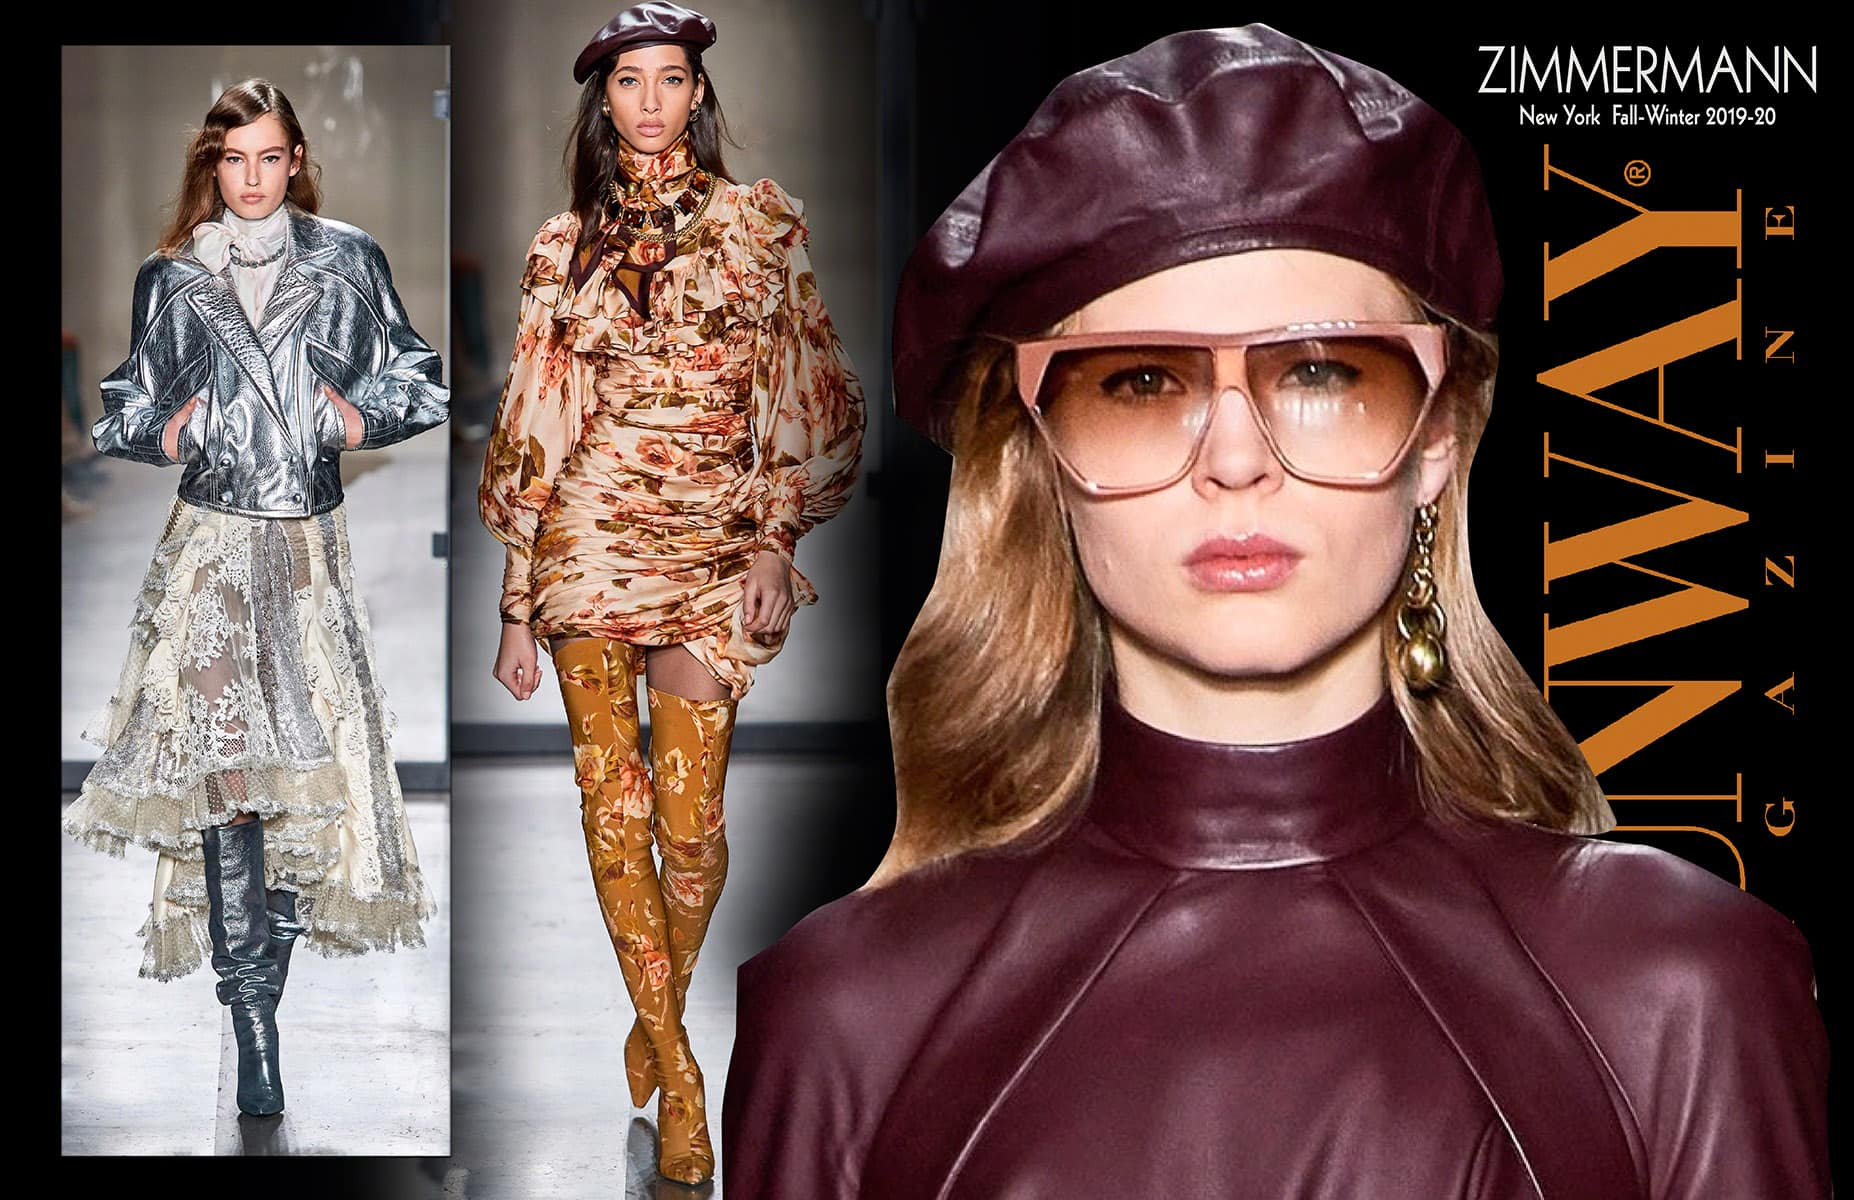 Zimmermann Fall-Winter 2019-2020 New York by RUNWAY MAGAZINE